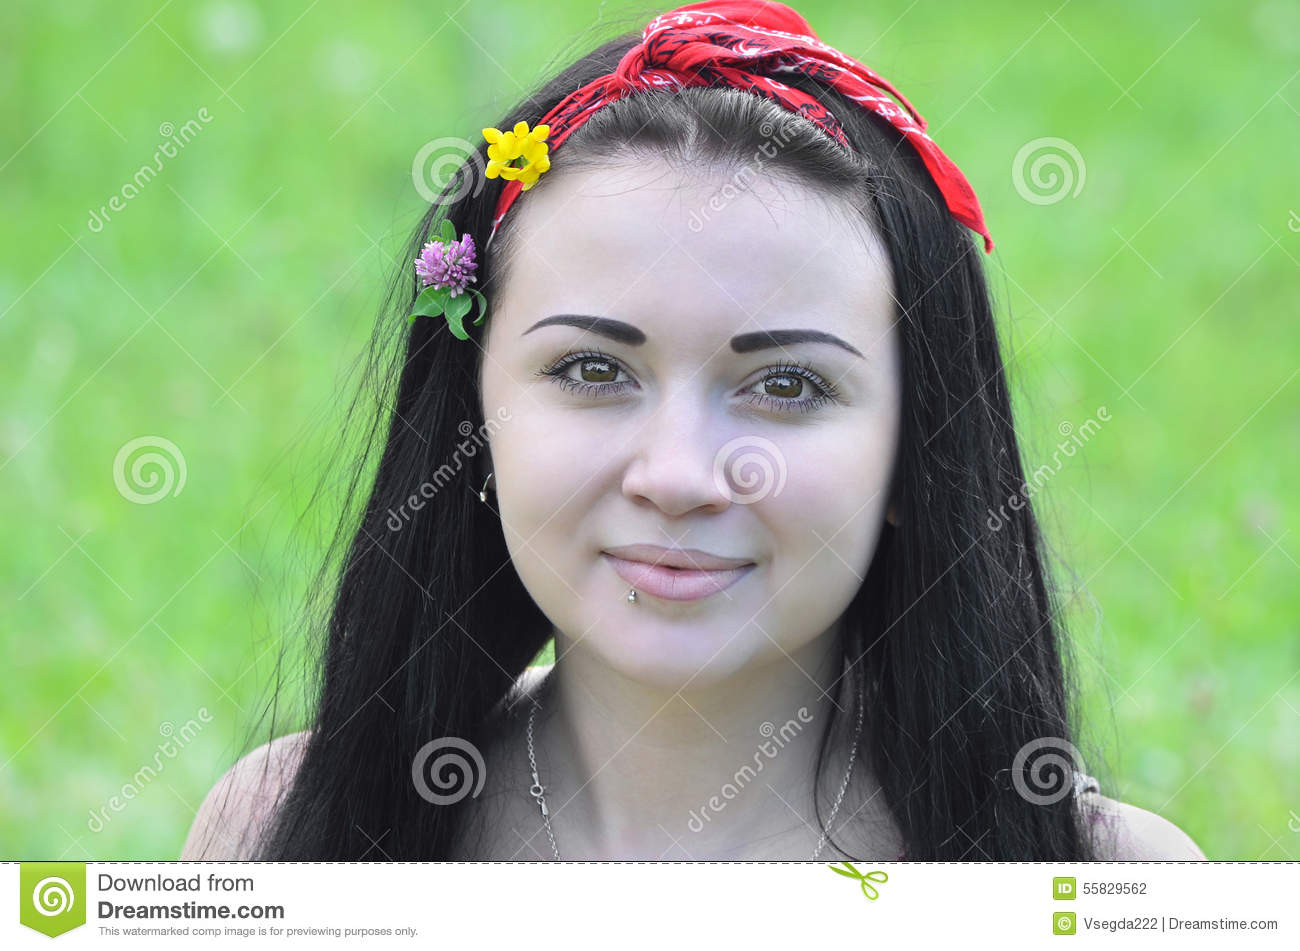 Portrait of a young, beautiful girl, brunette with flowers in her hair and scarf